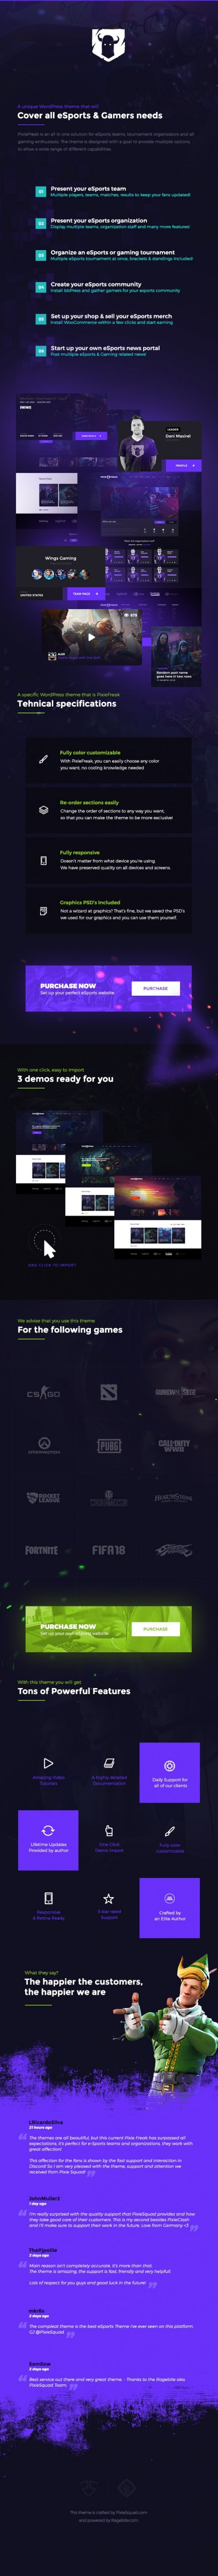 pixiefreak - eSports Gaming Theme for Teams